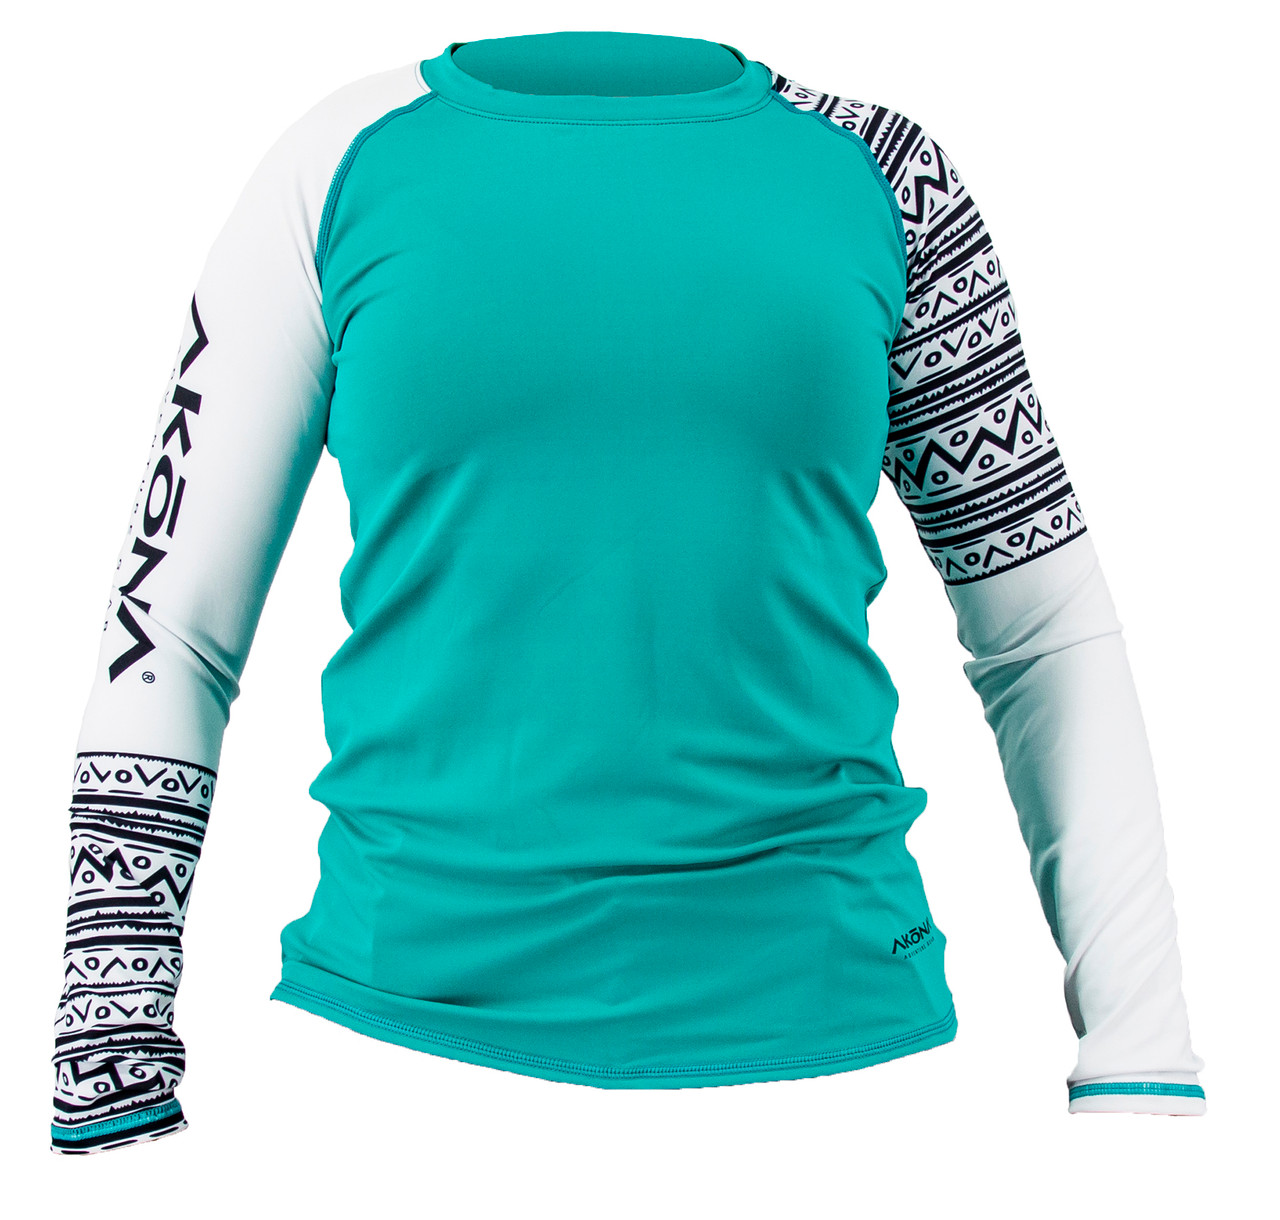 Akona Long Sleeve Women's Rash Guard Scuba Diving, Snorkeling, Teal